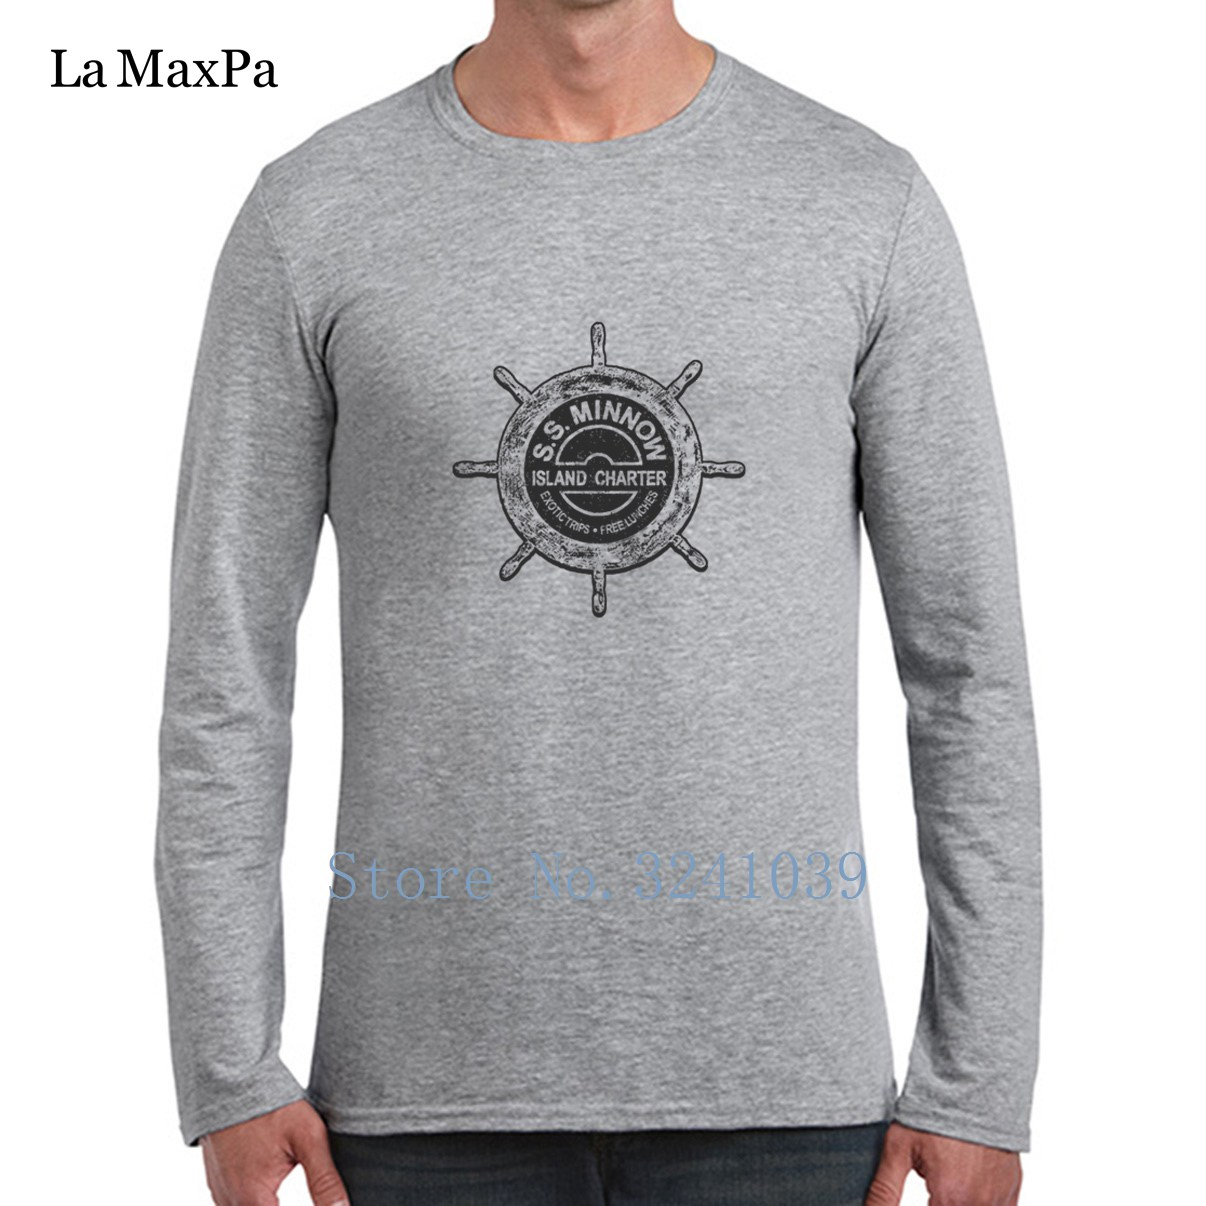 e2f41175 Build Your Own La Maxpa Gilligan's Island Novelty Tee Shirt For Mens 2018  Men T Shirt Homme long Sleeve Men Tshirt-in T-Shirts from Men's Clothing on  ...